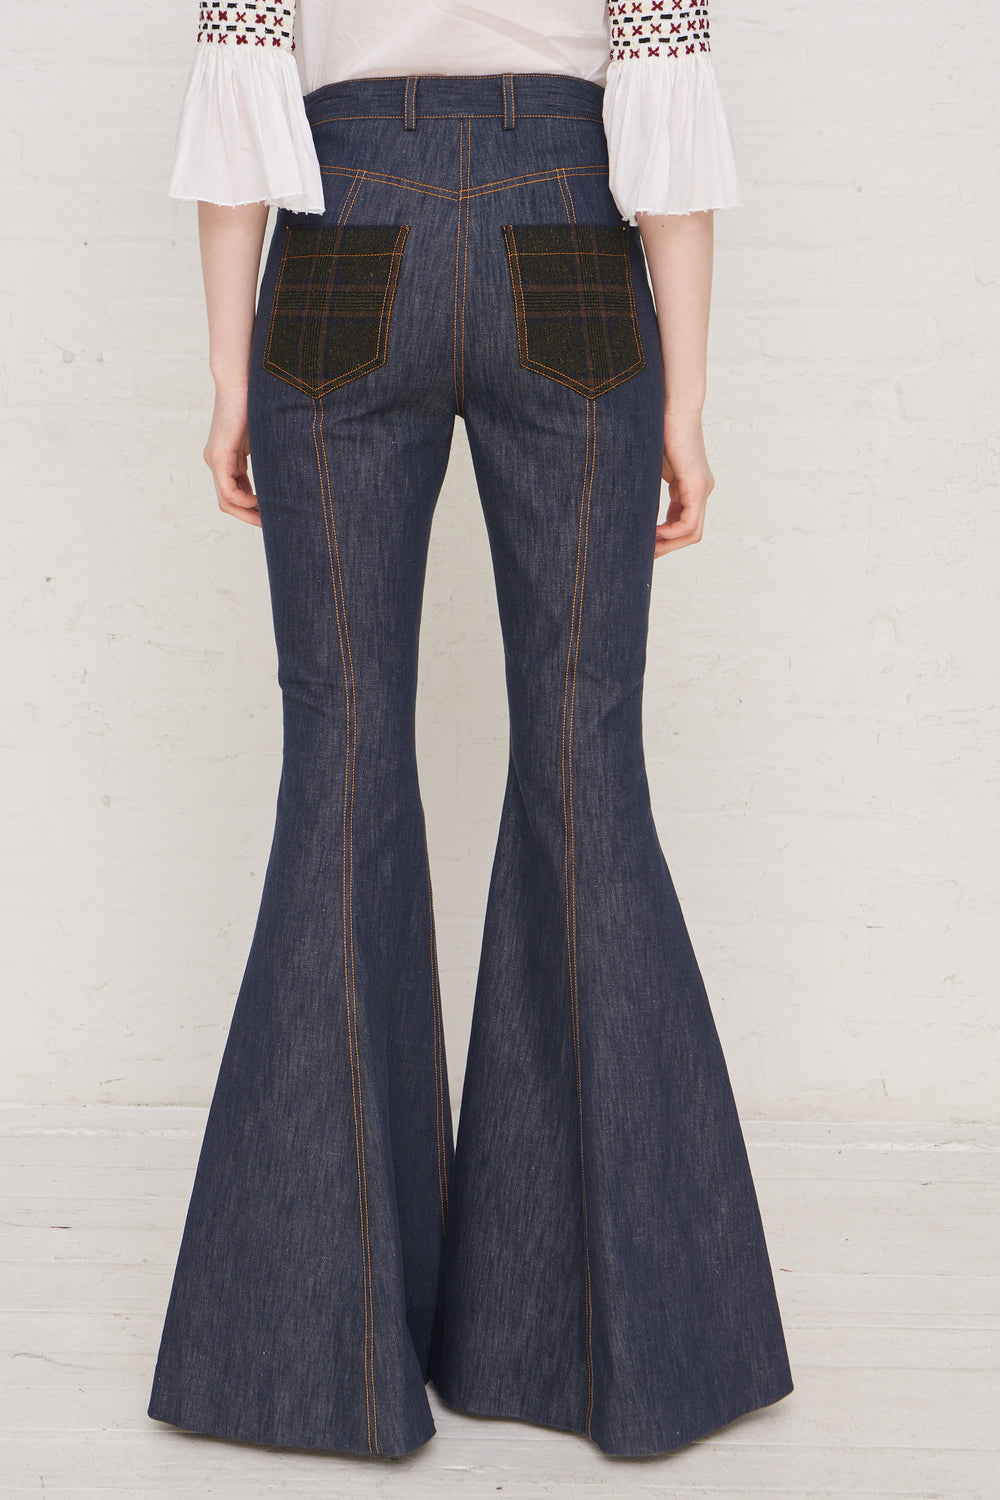 Exaggerated Flared Pant